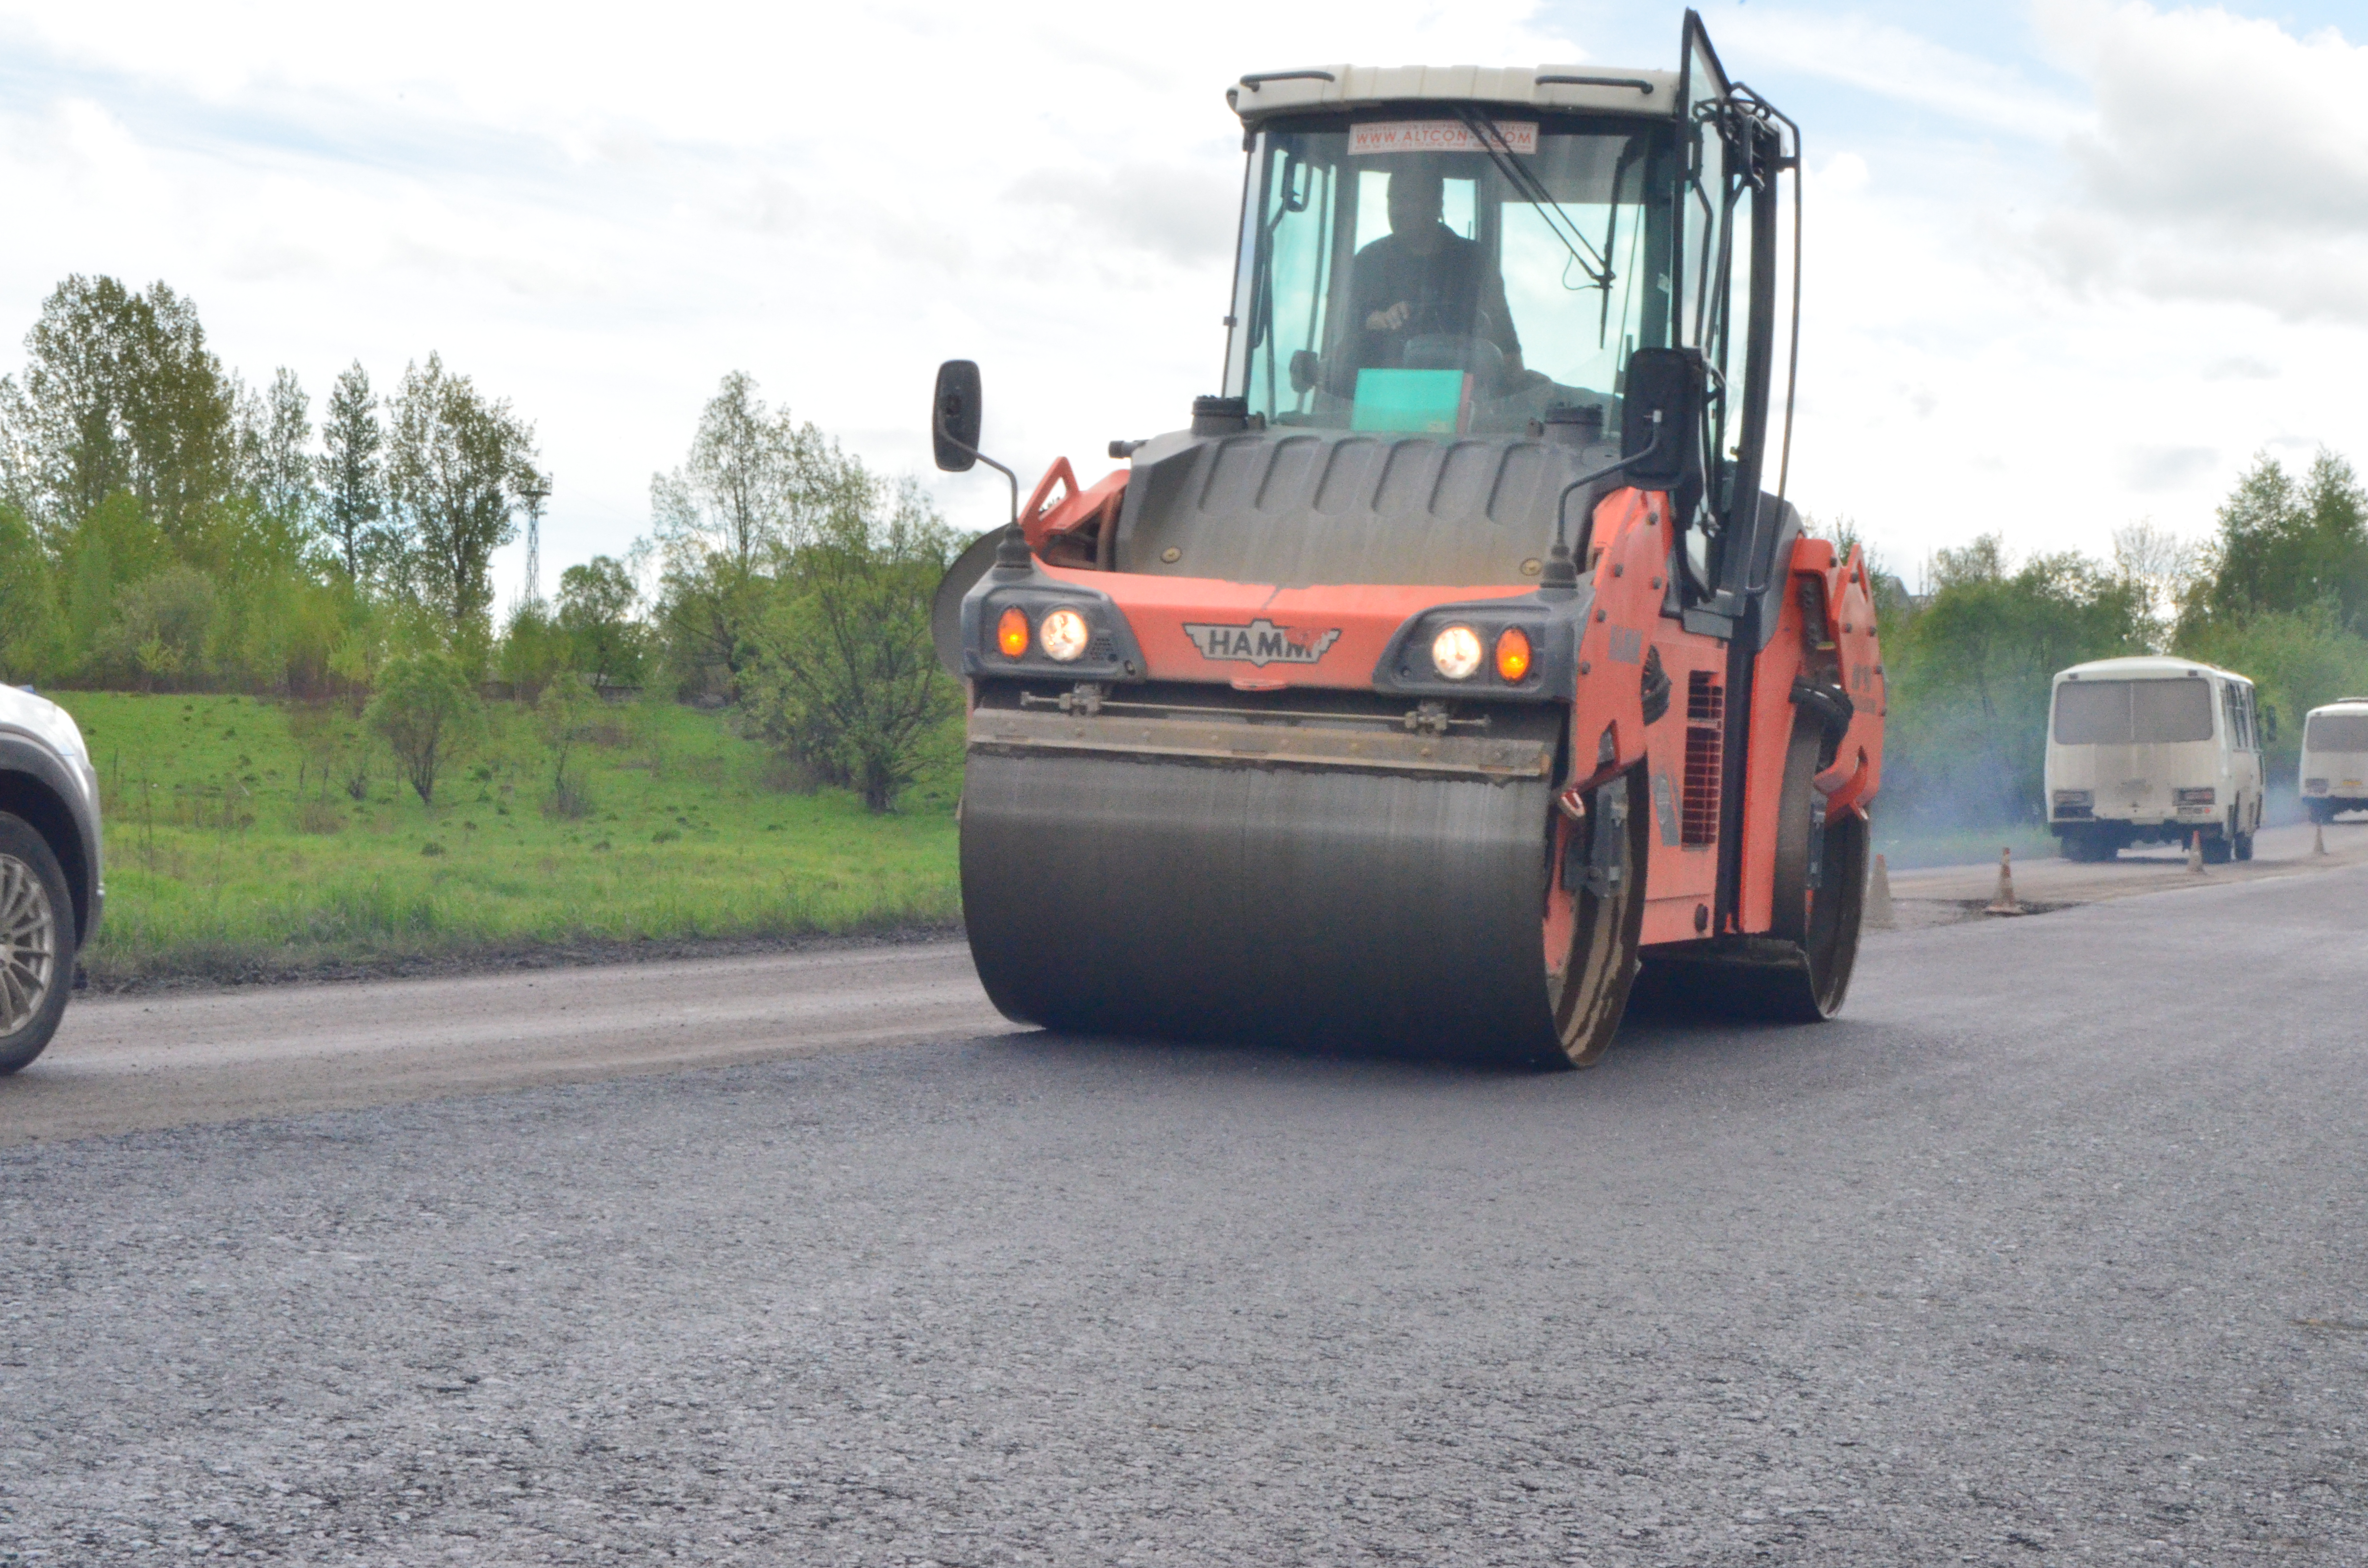 Road repairs in Dolyna district postponed due to weather conditions